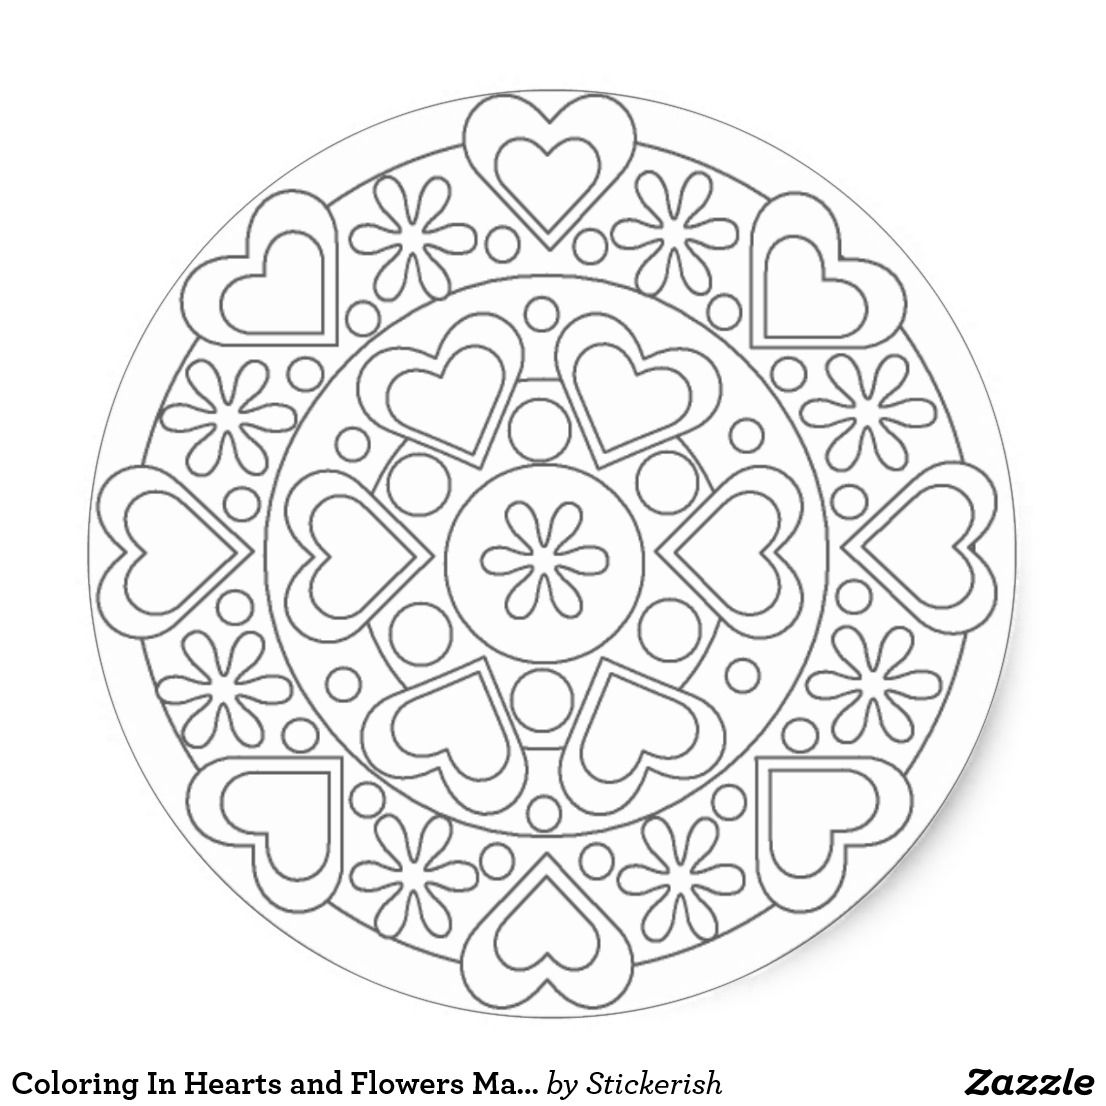 Coloring In Hearts And Flowers Mandala Sticker Zazzle Com Mandala Coloring Pages Mandala Coloring Heart Coloring Pages